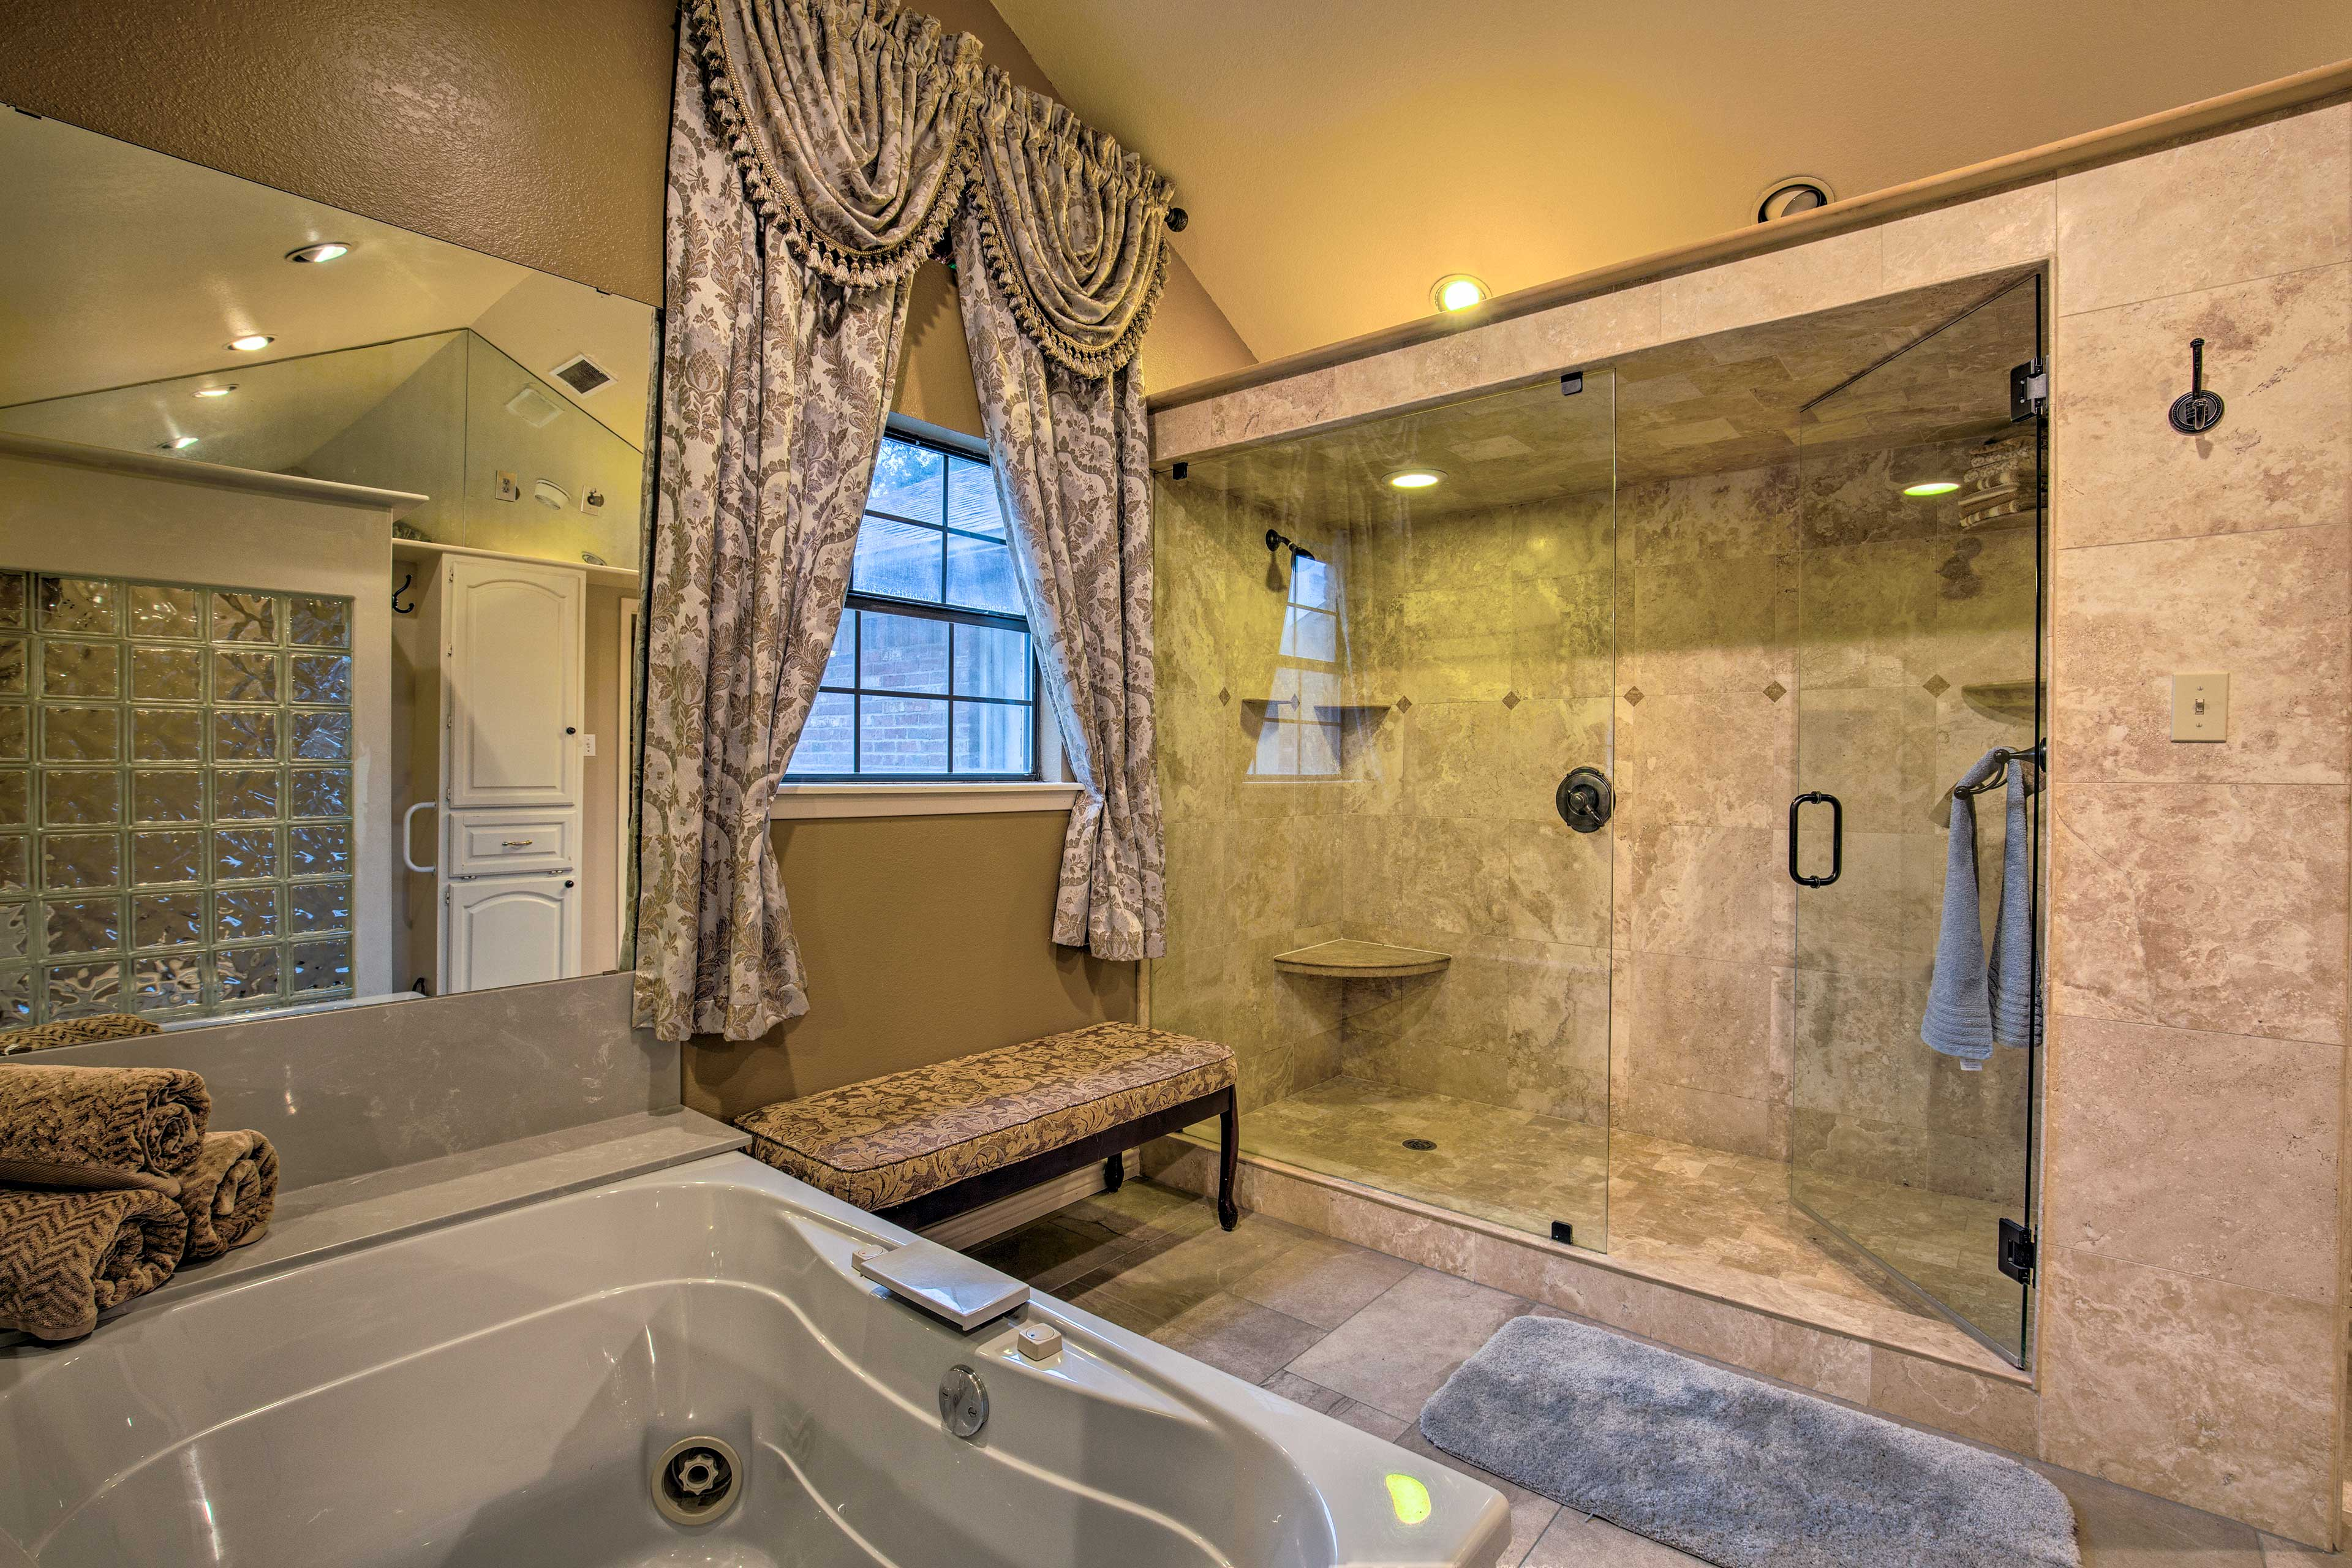 Choose from a soak in the jetted tub or rinse off in the travertine shower.